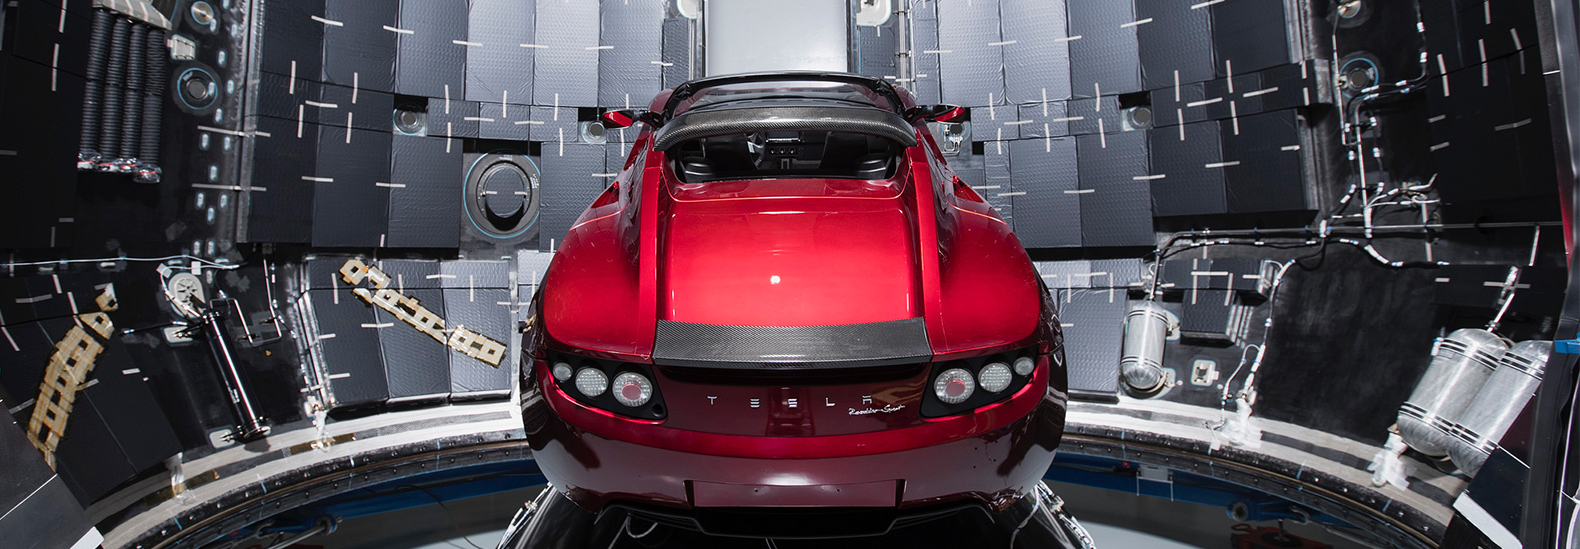 elon musk shares pictures of his red tesla roadster ready